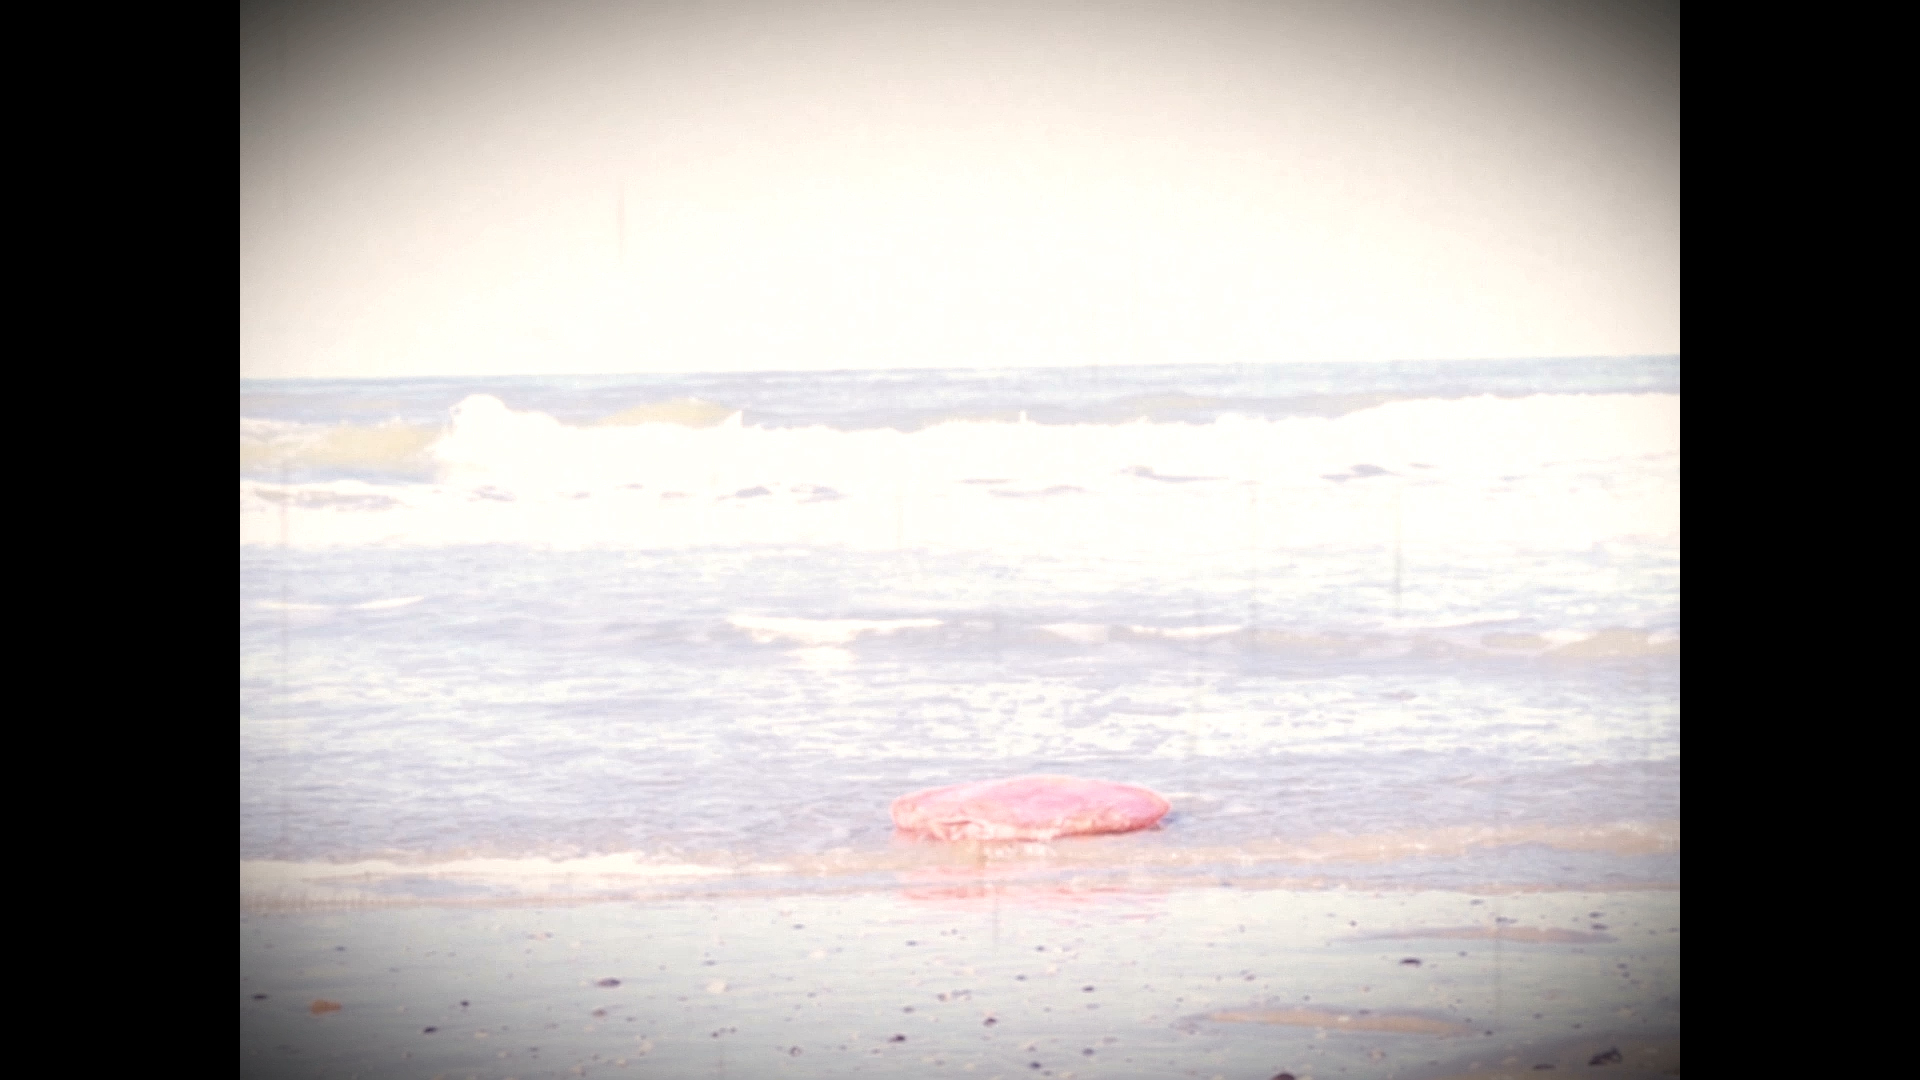 Video snapshot of a heart drifting on the shore